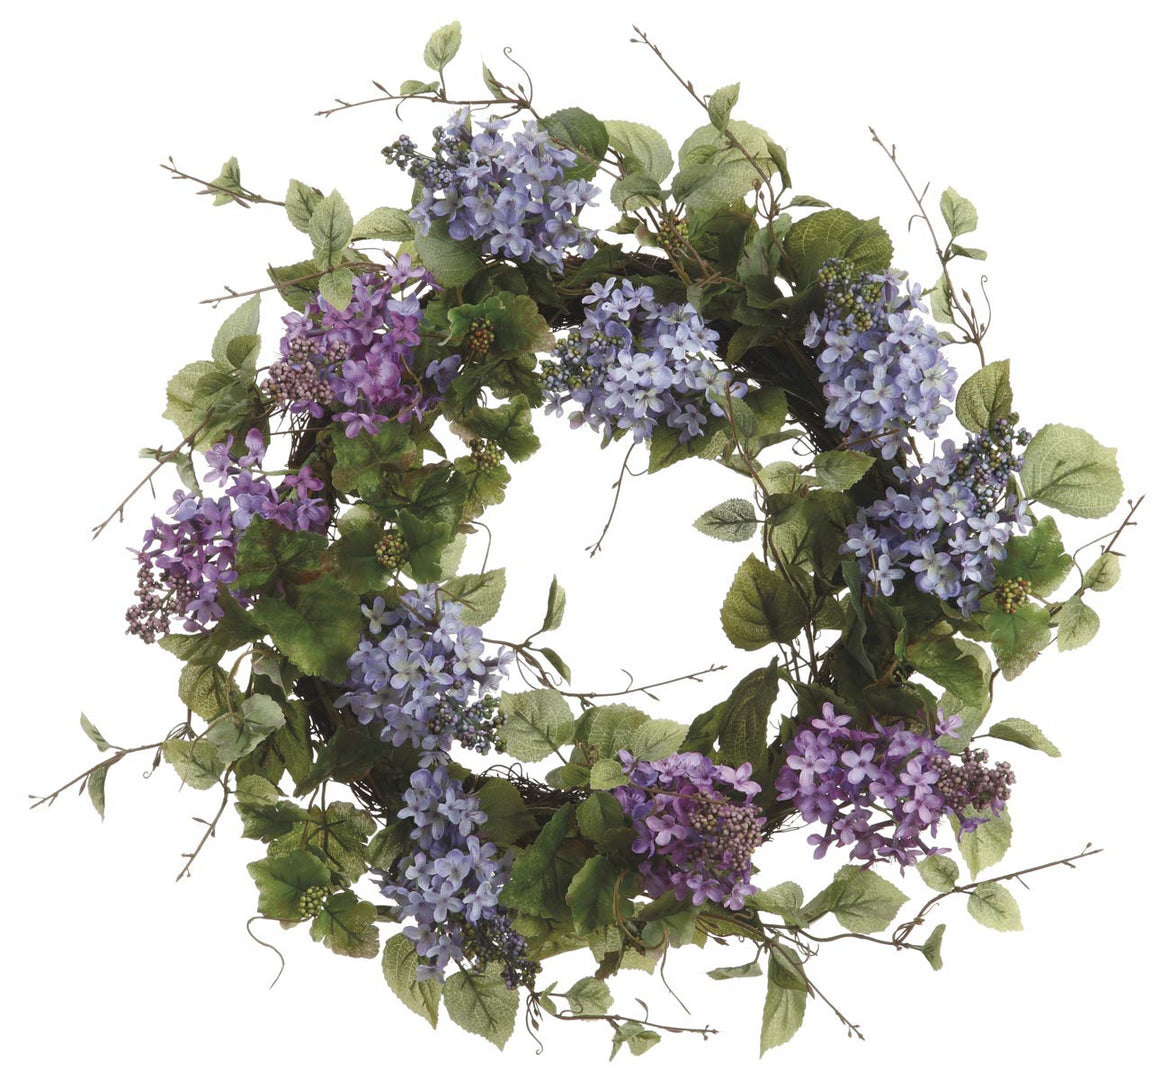 Ten Waterloo 24 Inch Artificial Lilac Blooms Wreath on a Natural Twig Base